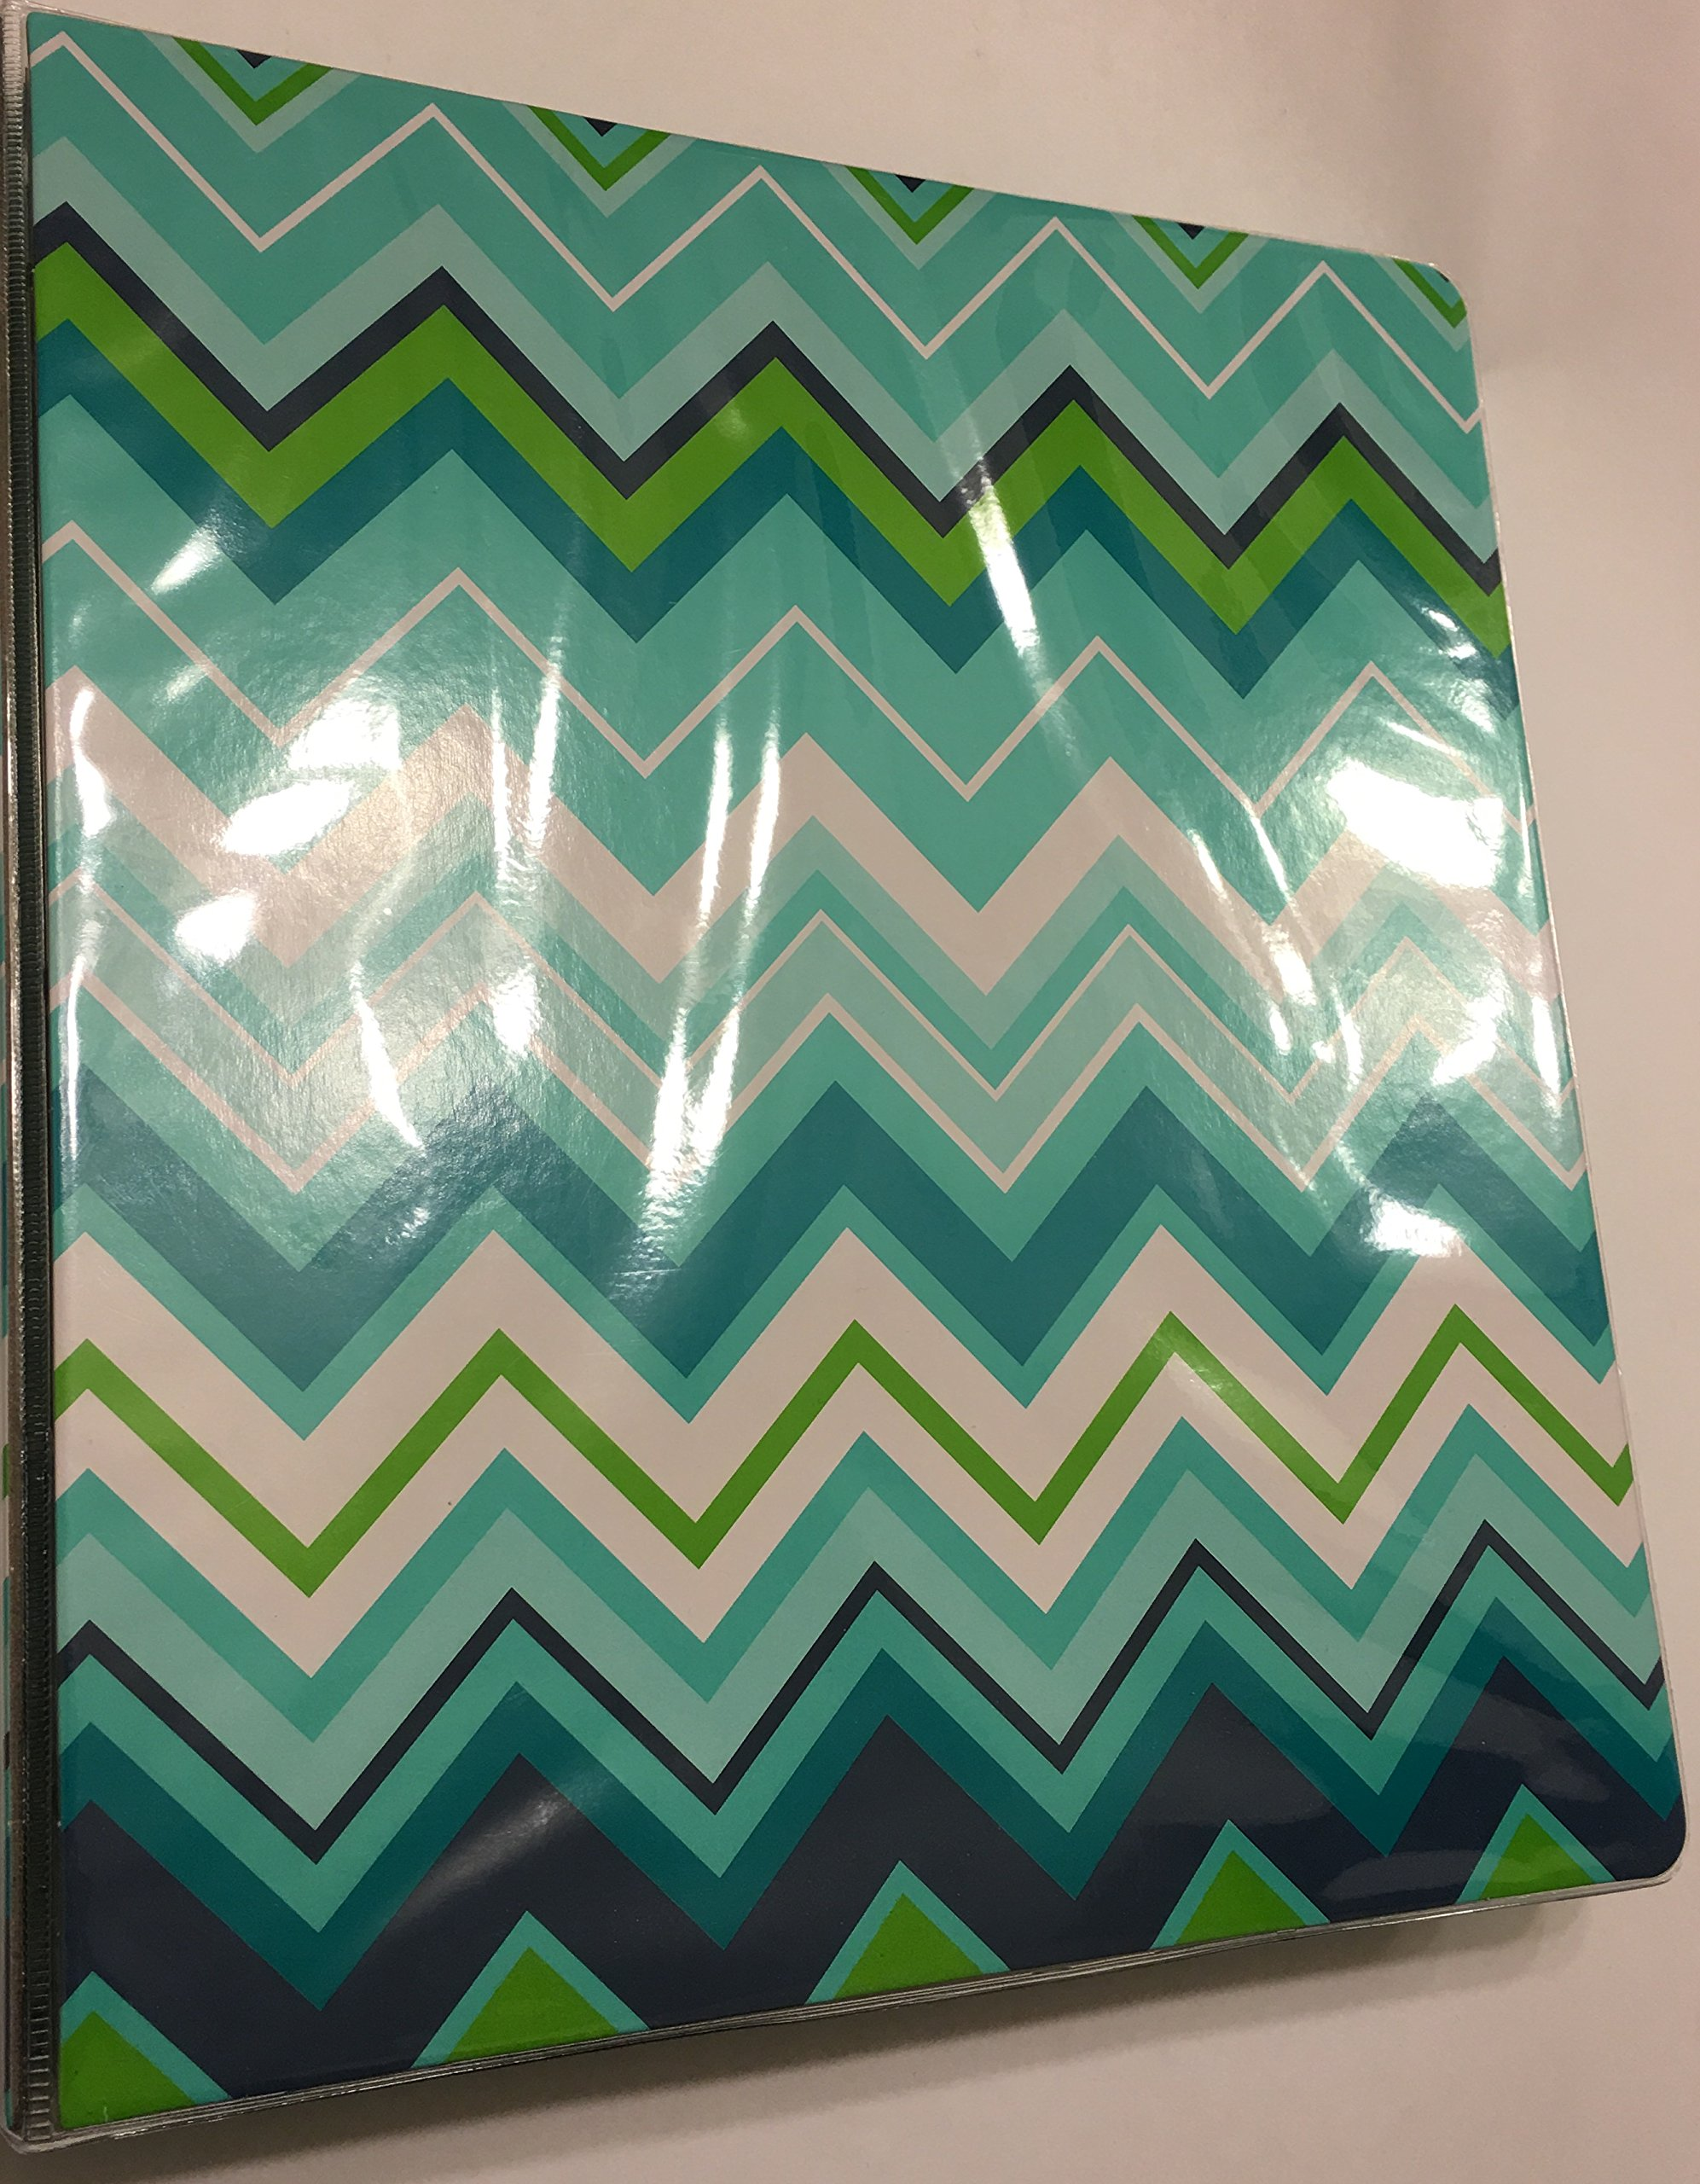 Divoga 1 inch 3 Ring School Fashion Binder, Large Green Chevrons